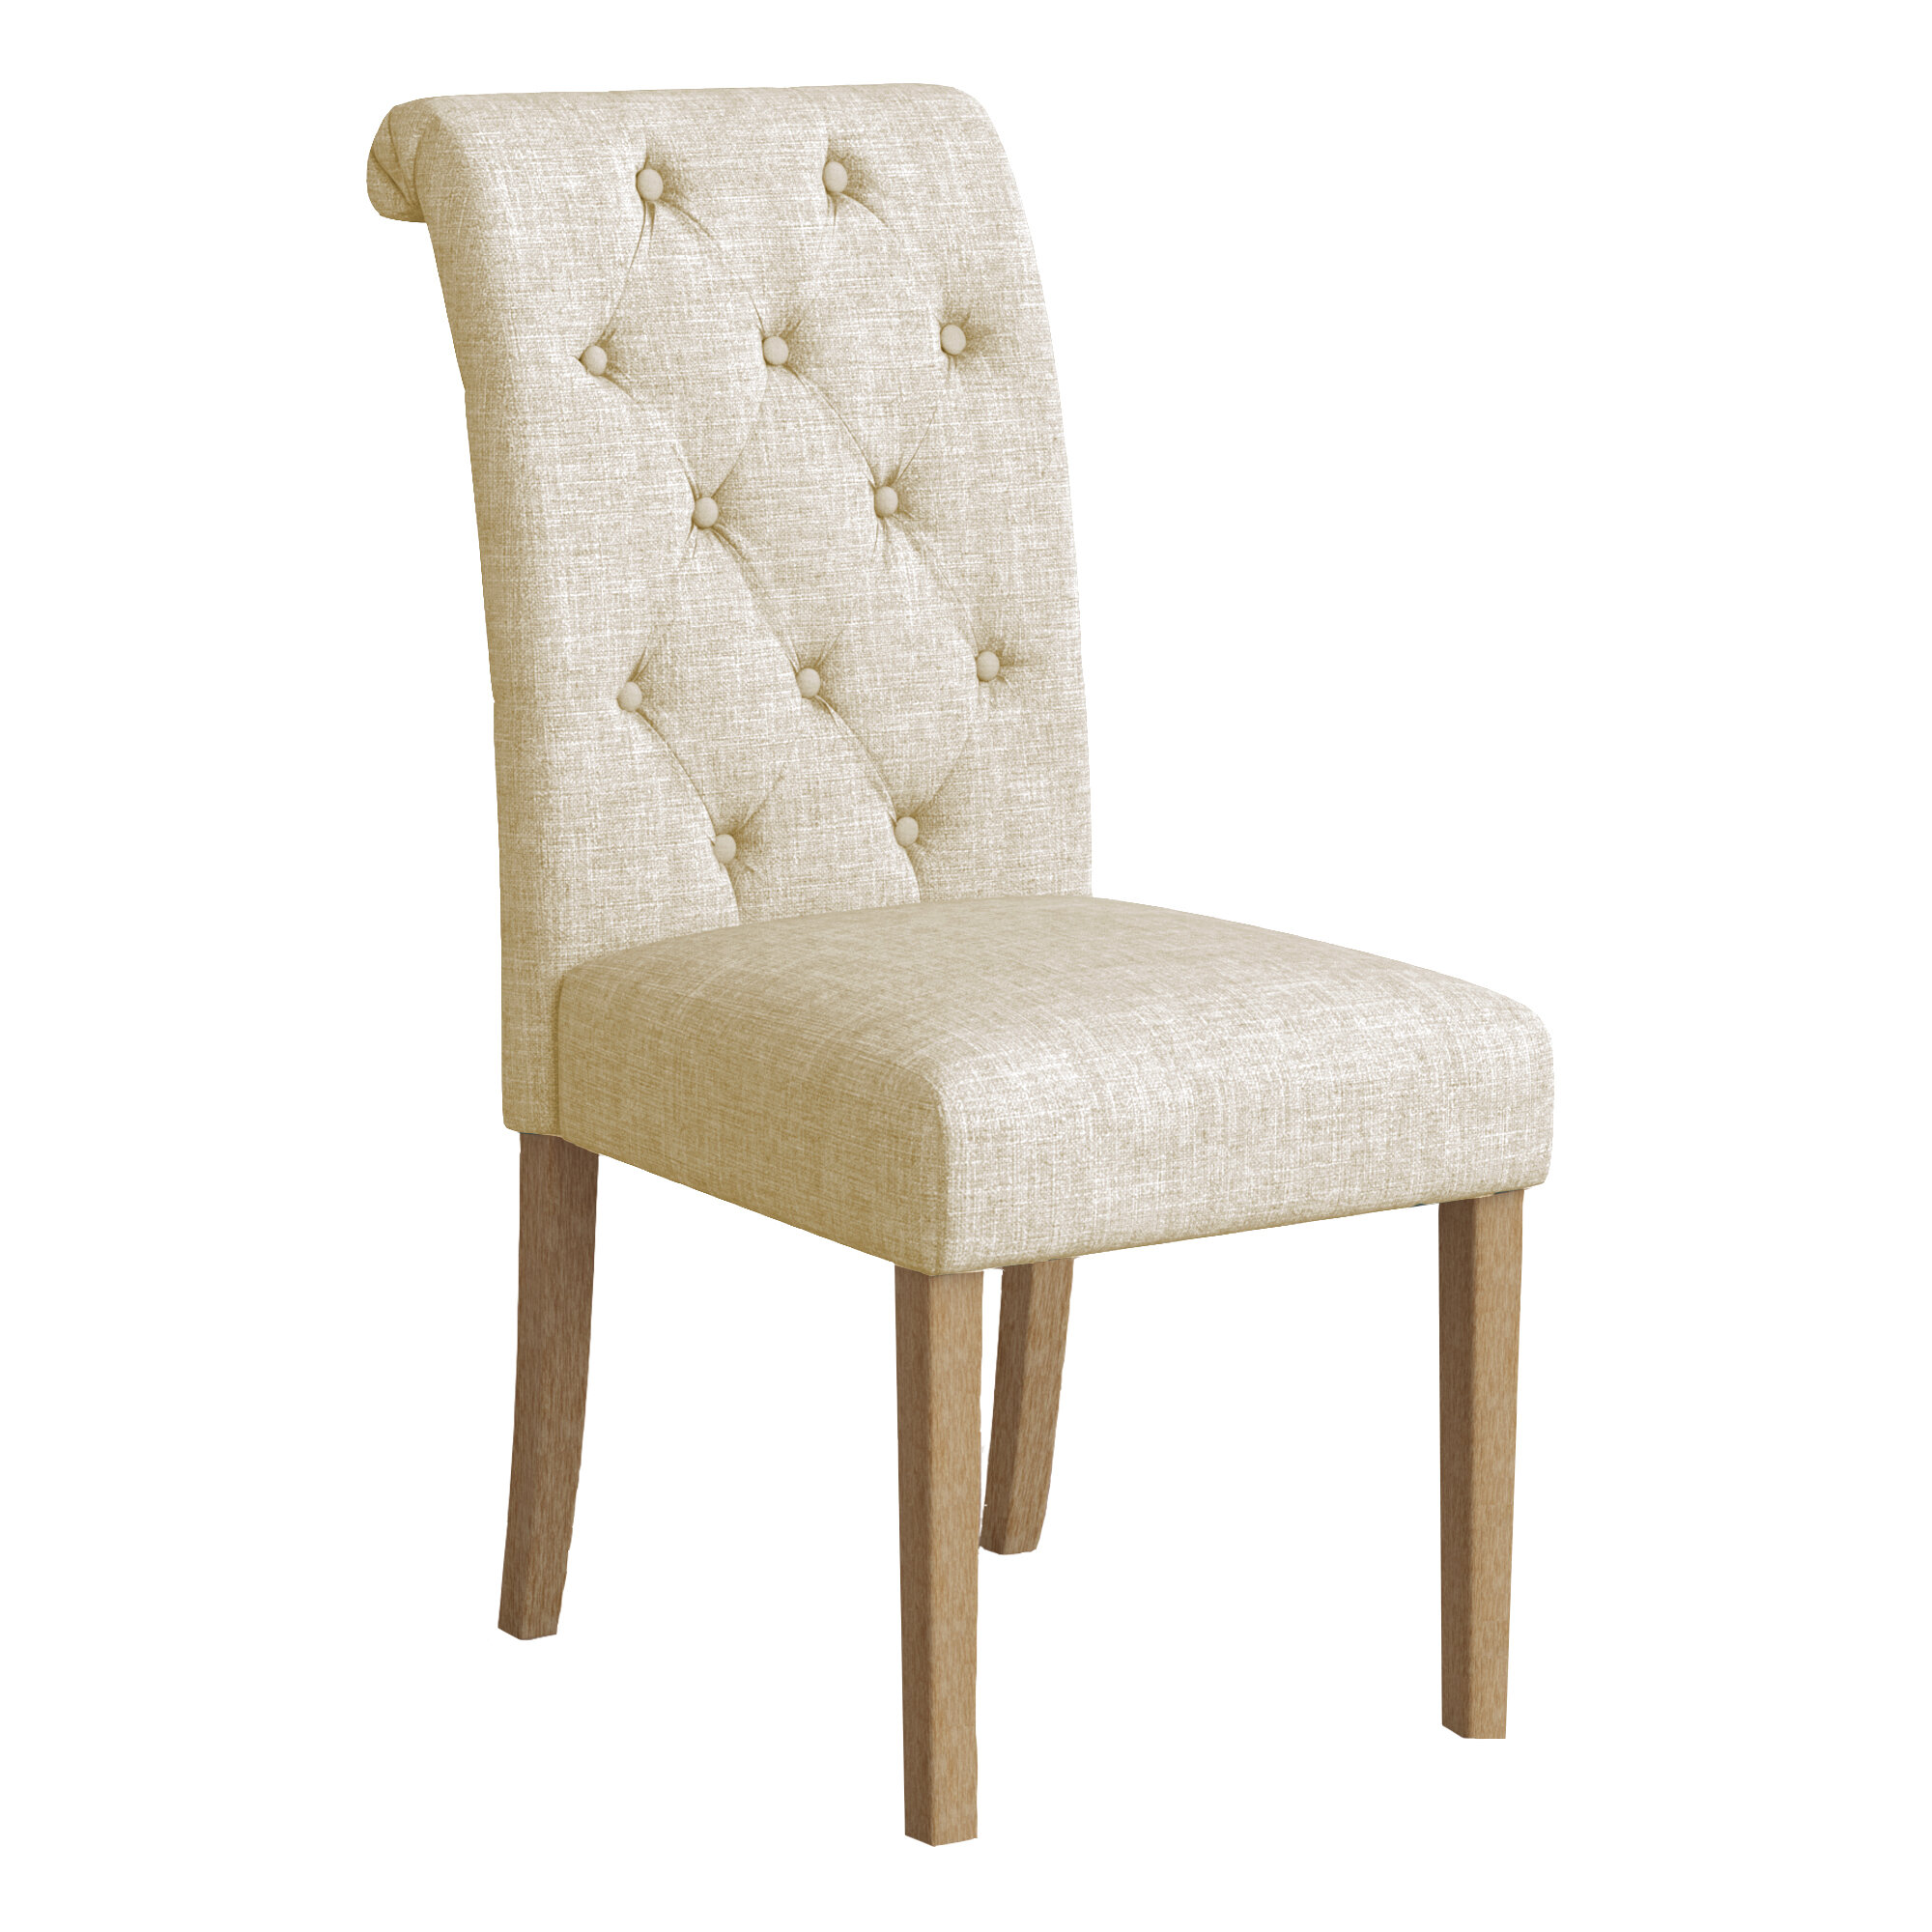 7c5620095d48 Tan Dining Chairs